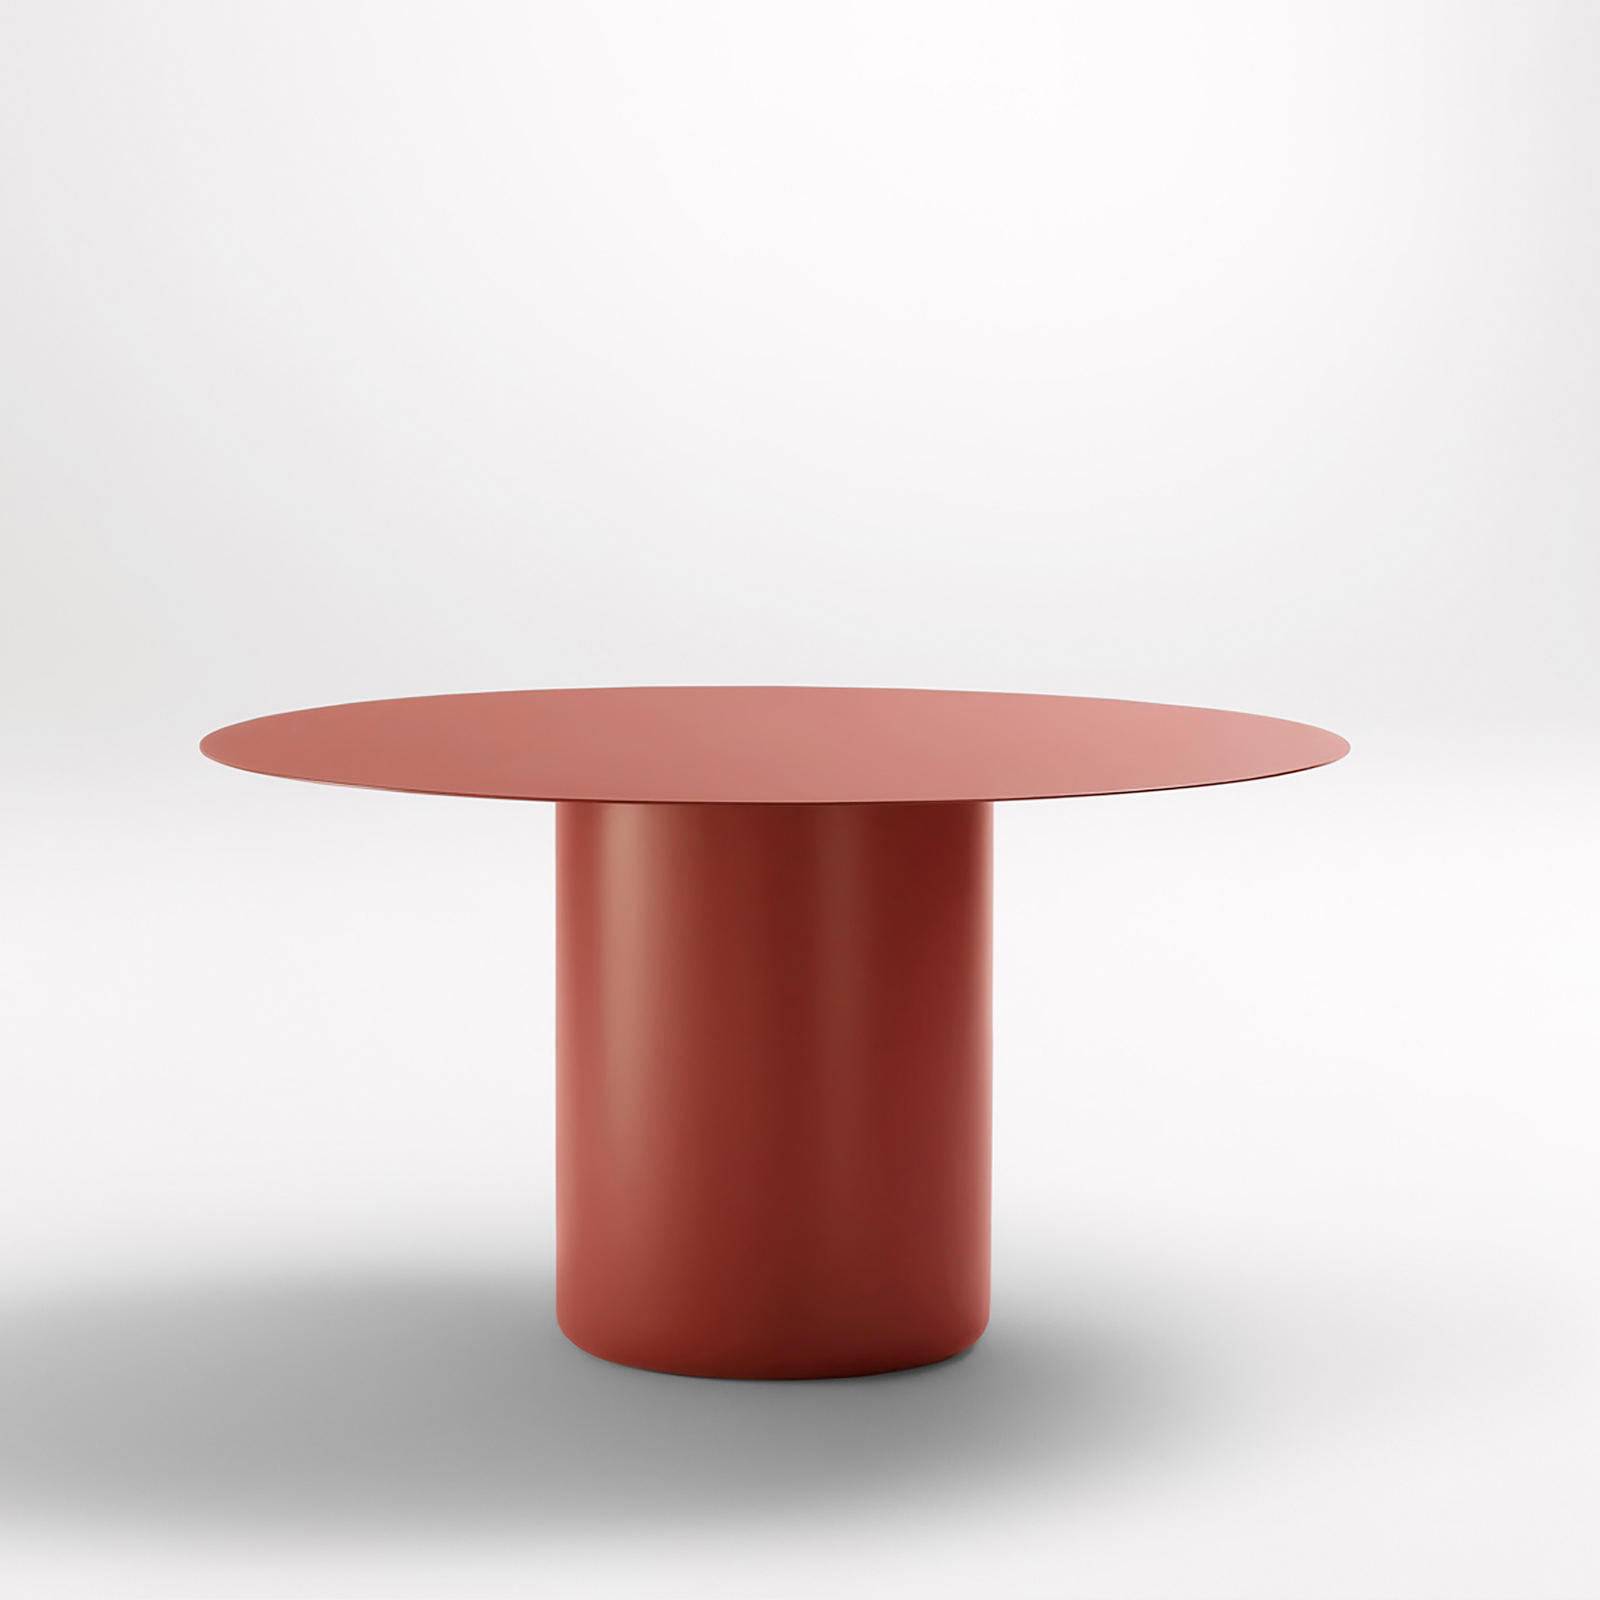 Sequence Dining Round Coco Flip Headlandred